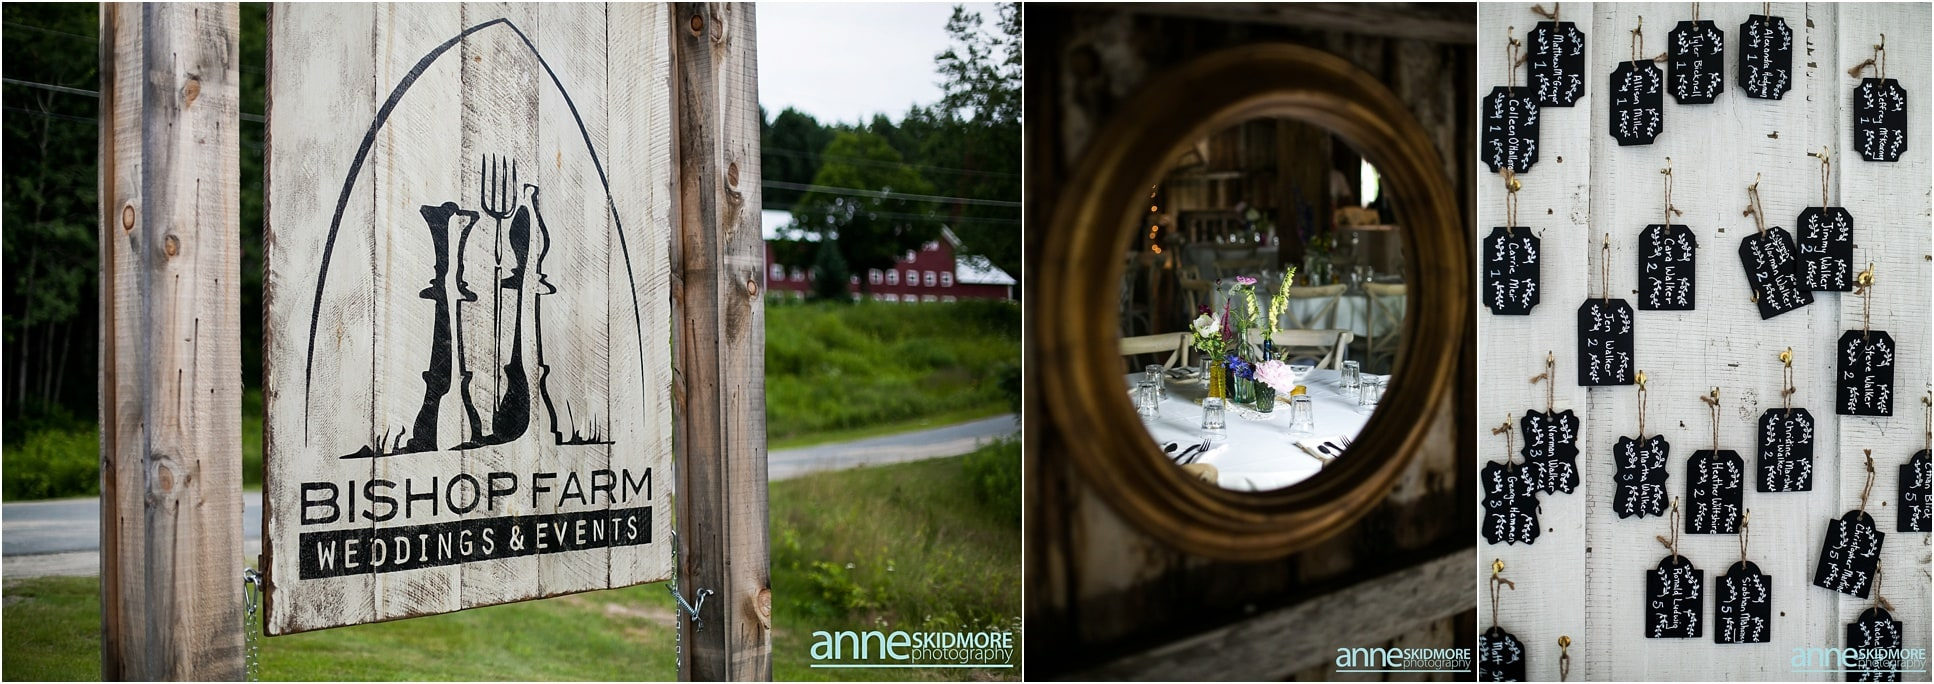 BISHOP_FARM_WEDDING__050